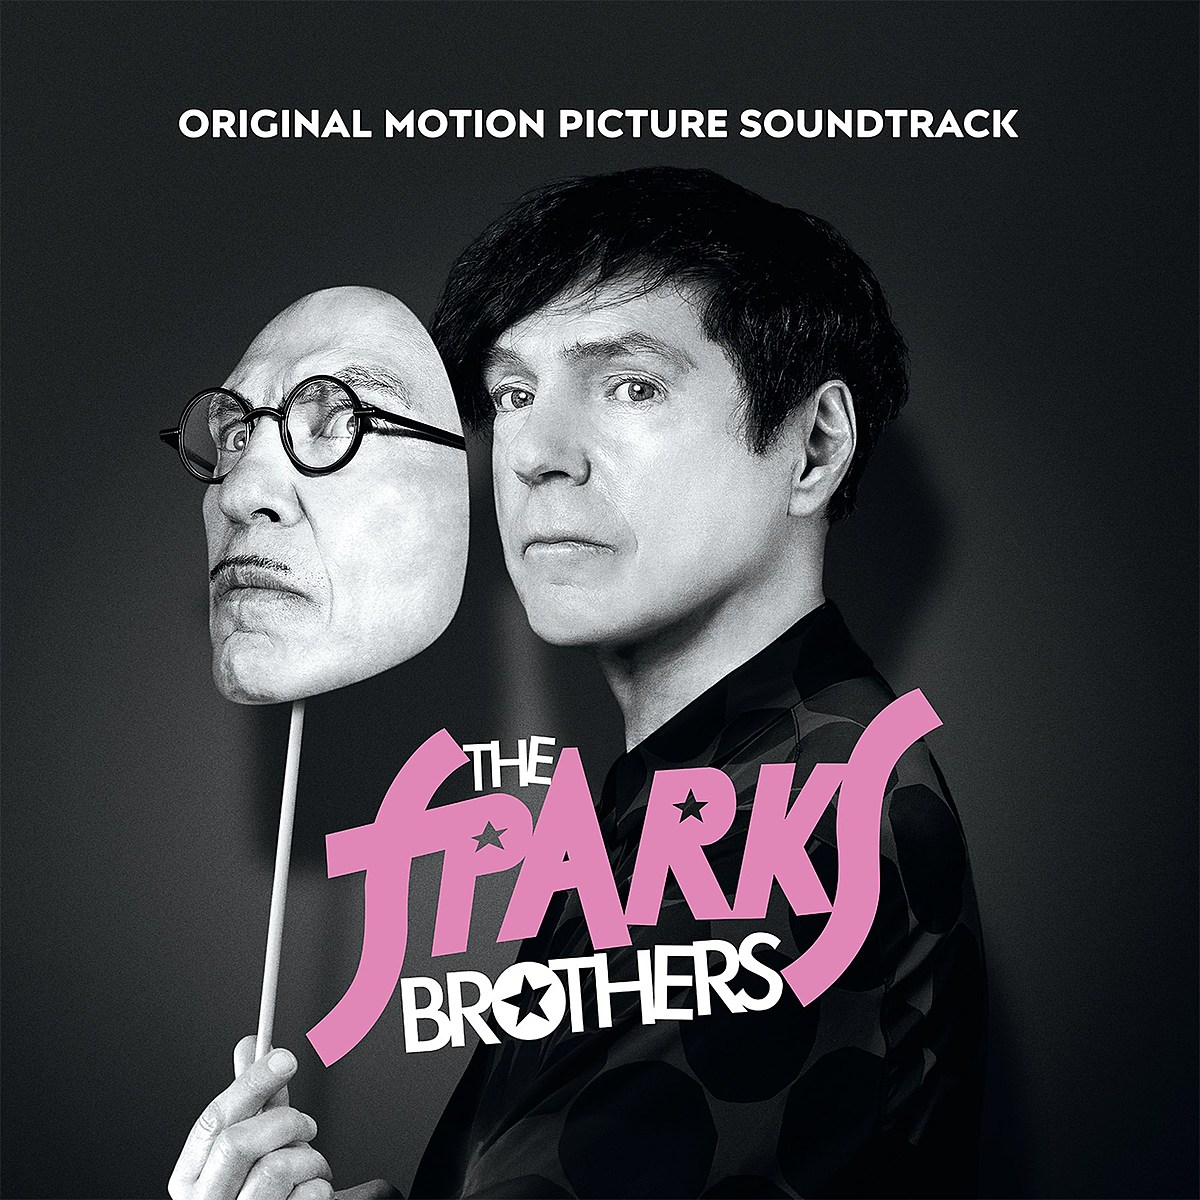 'The Sparks Brothers' getting 4-LP, 42-track soundtrack release